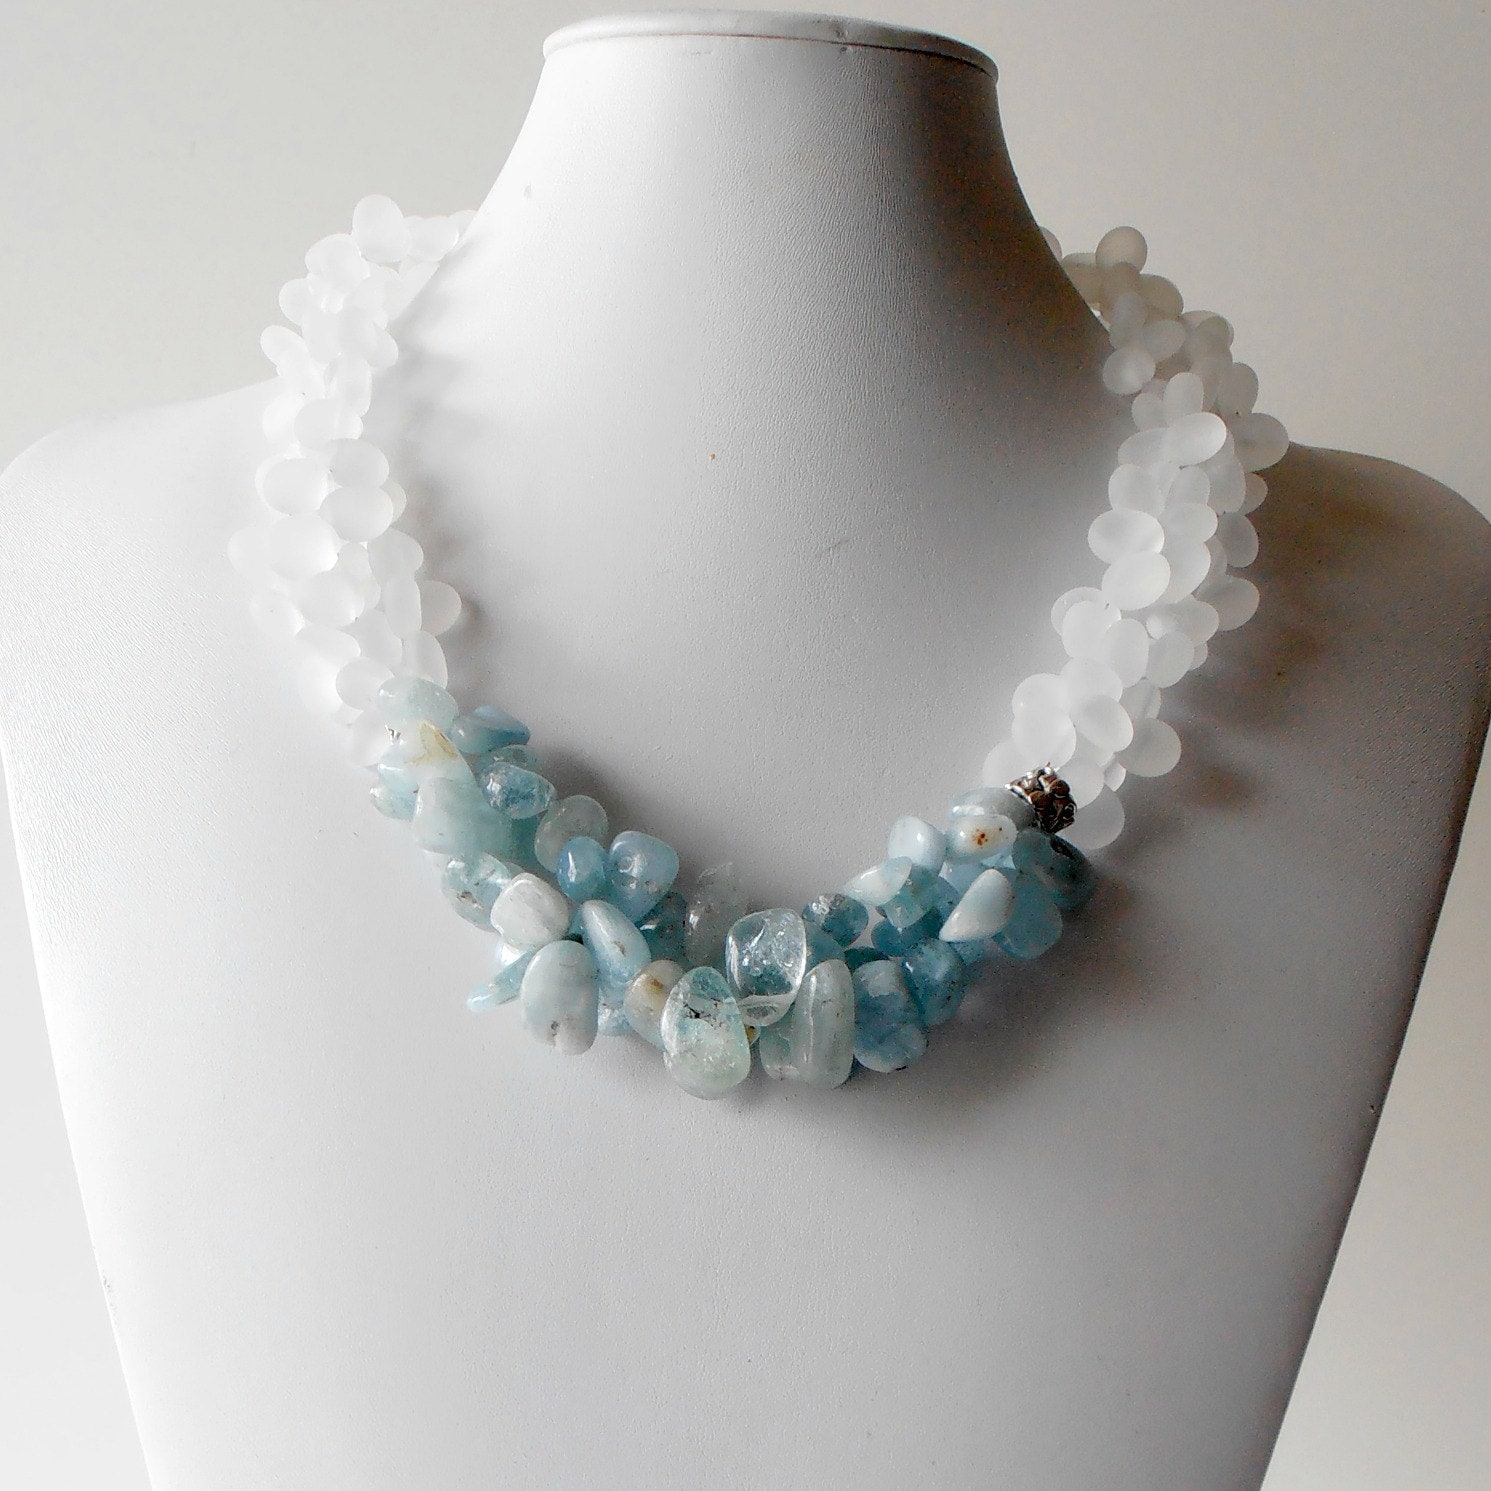 Chunky Necklace Aquamarine Gemstone Jewelry Light By